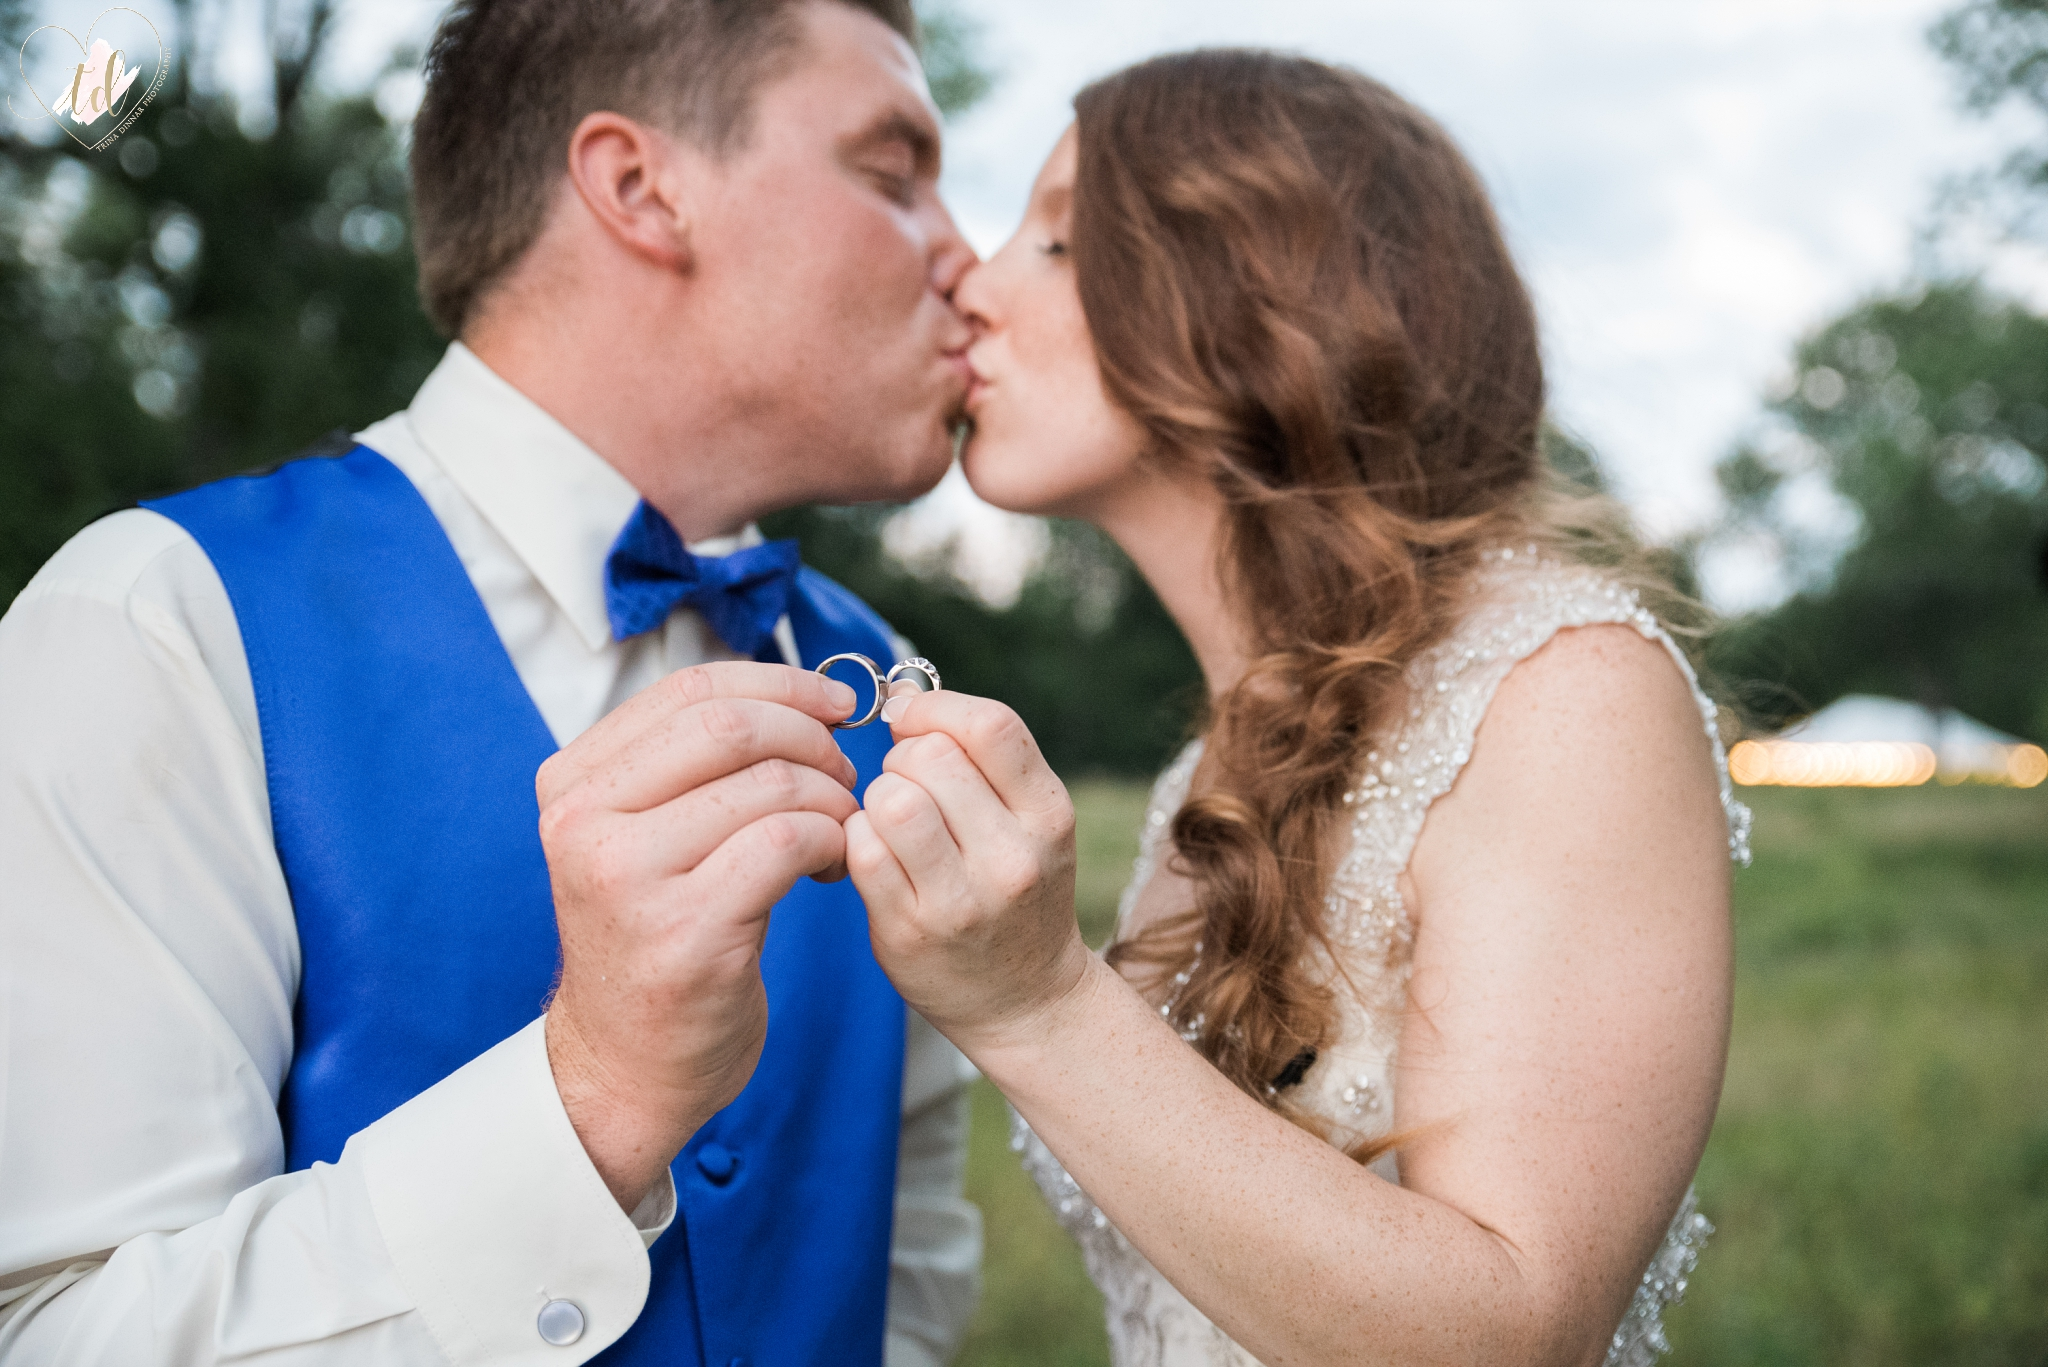 Bride Groom Kiss Holding Wedding Rings